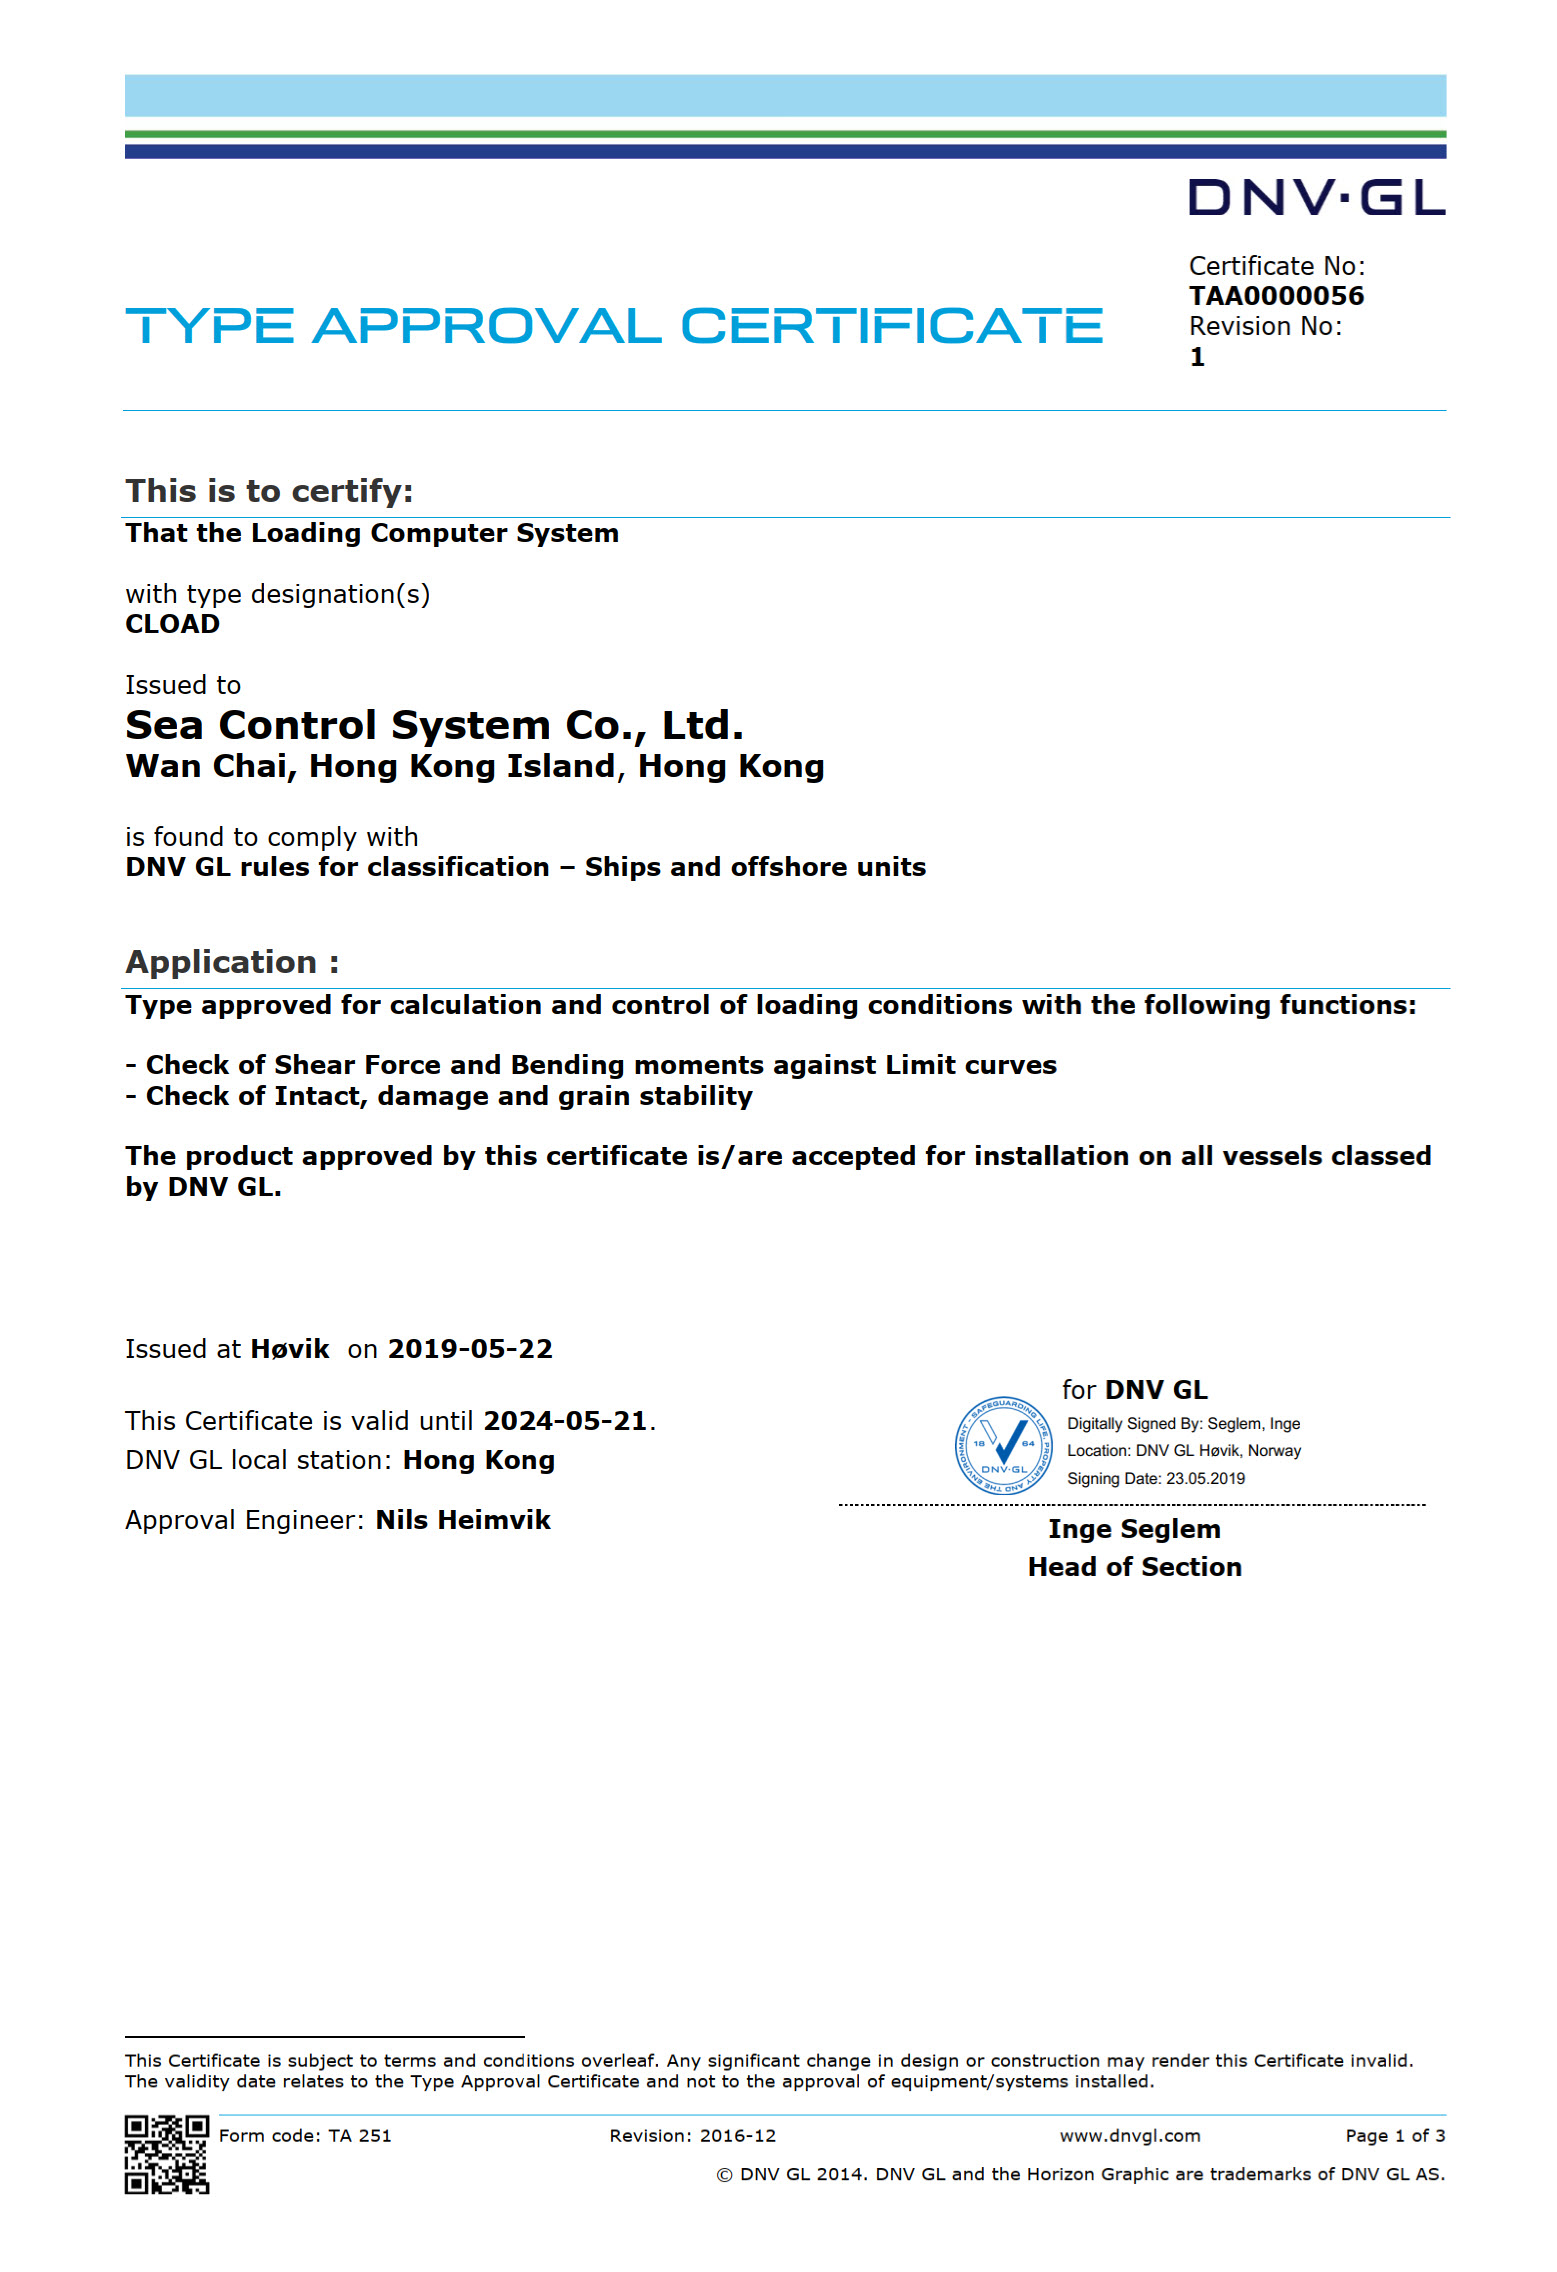 DNV GL Type Approval Certificate1